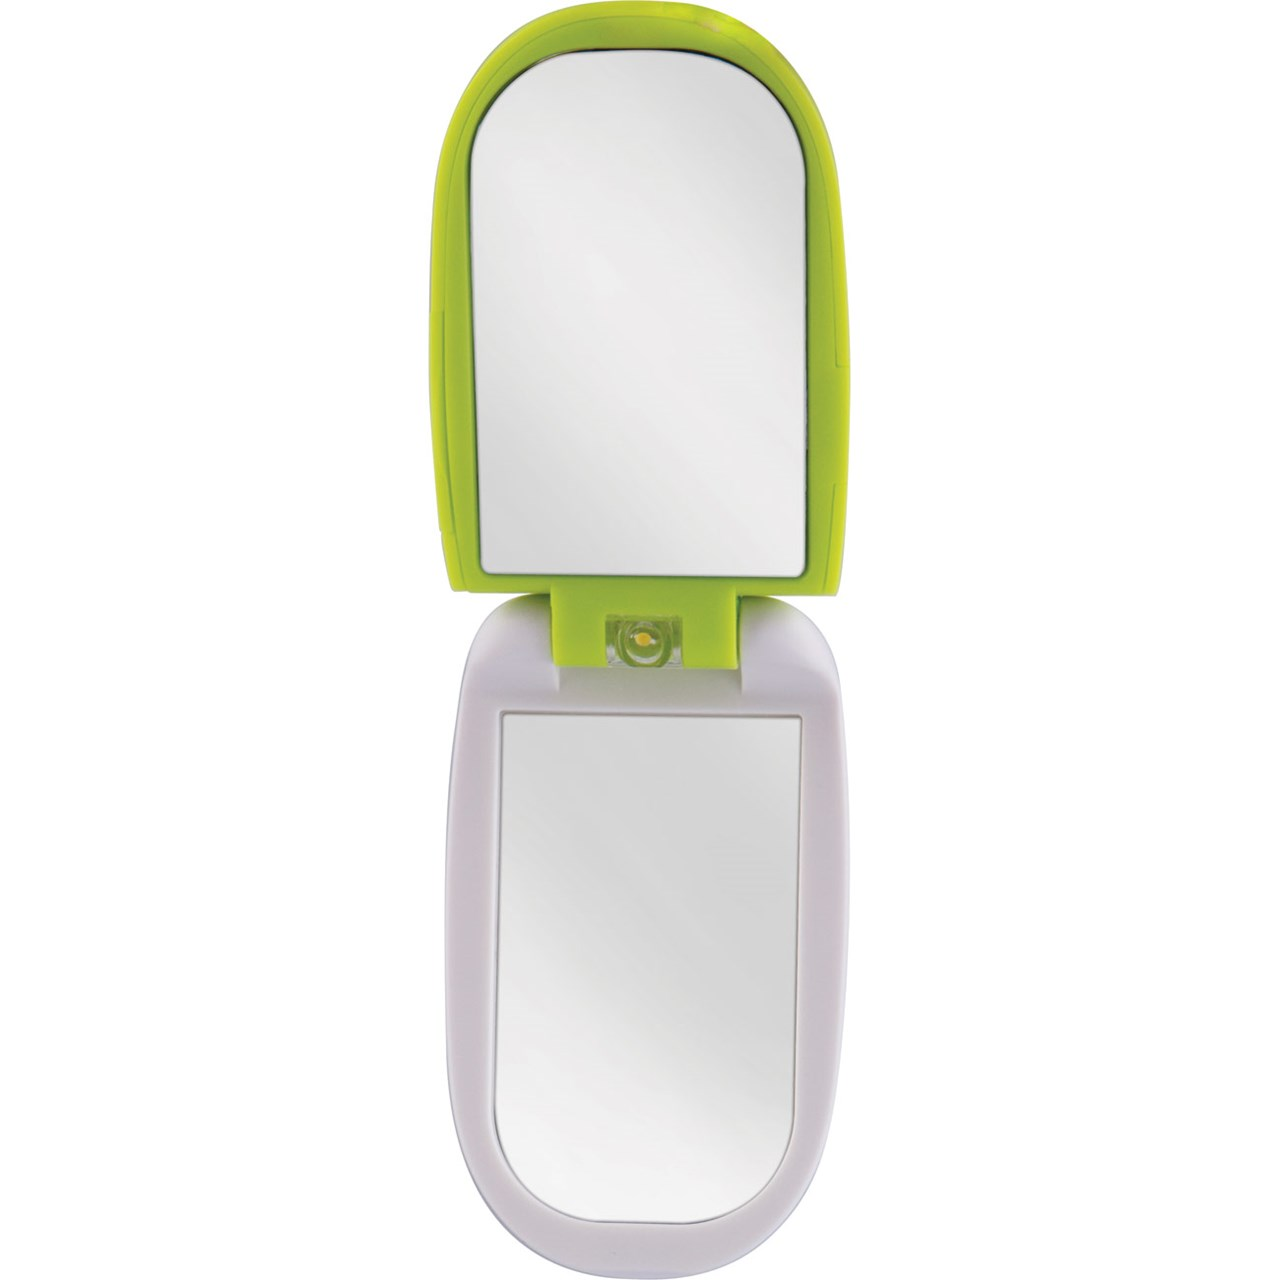 Maxiaids Led Lighted Compact Mirror With Lcd Clock 3x 1x